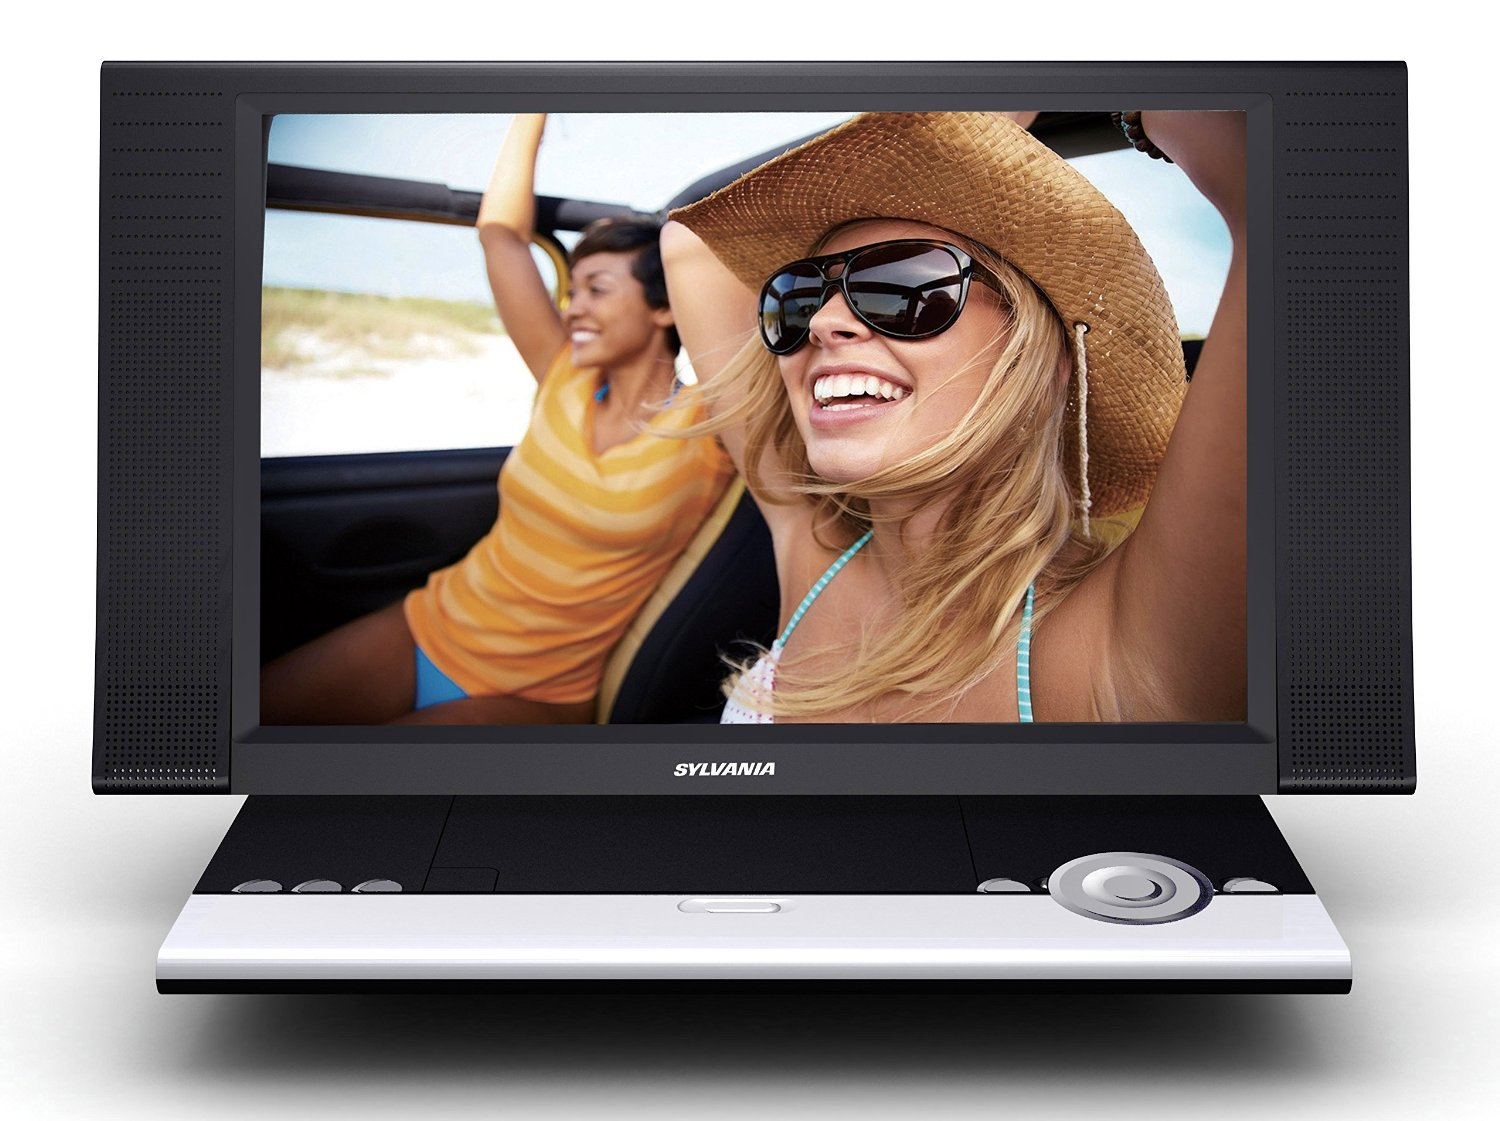 Sylvania SDVD1256 11.6-Inch Portable DVD Player